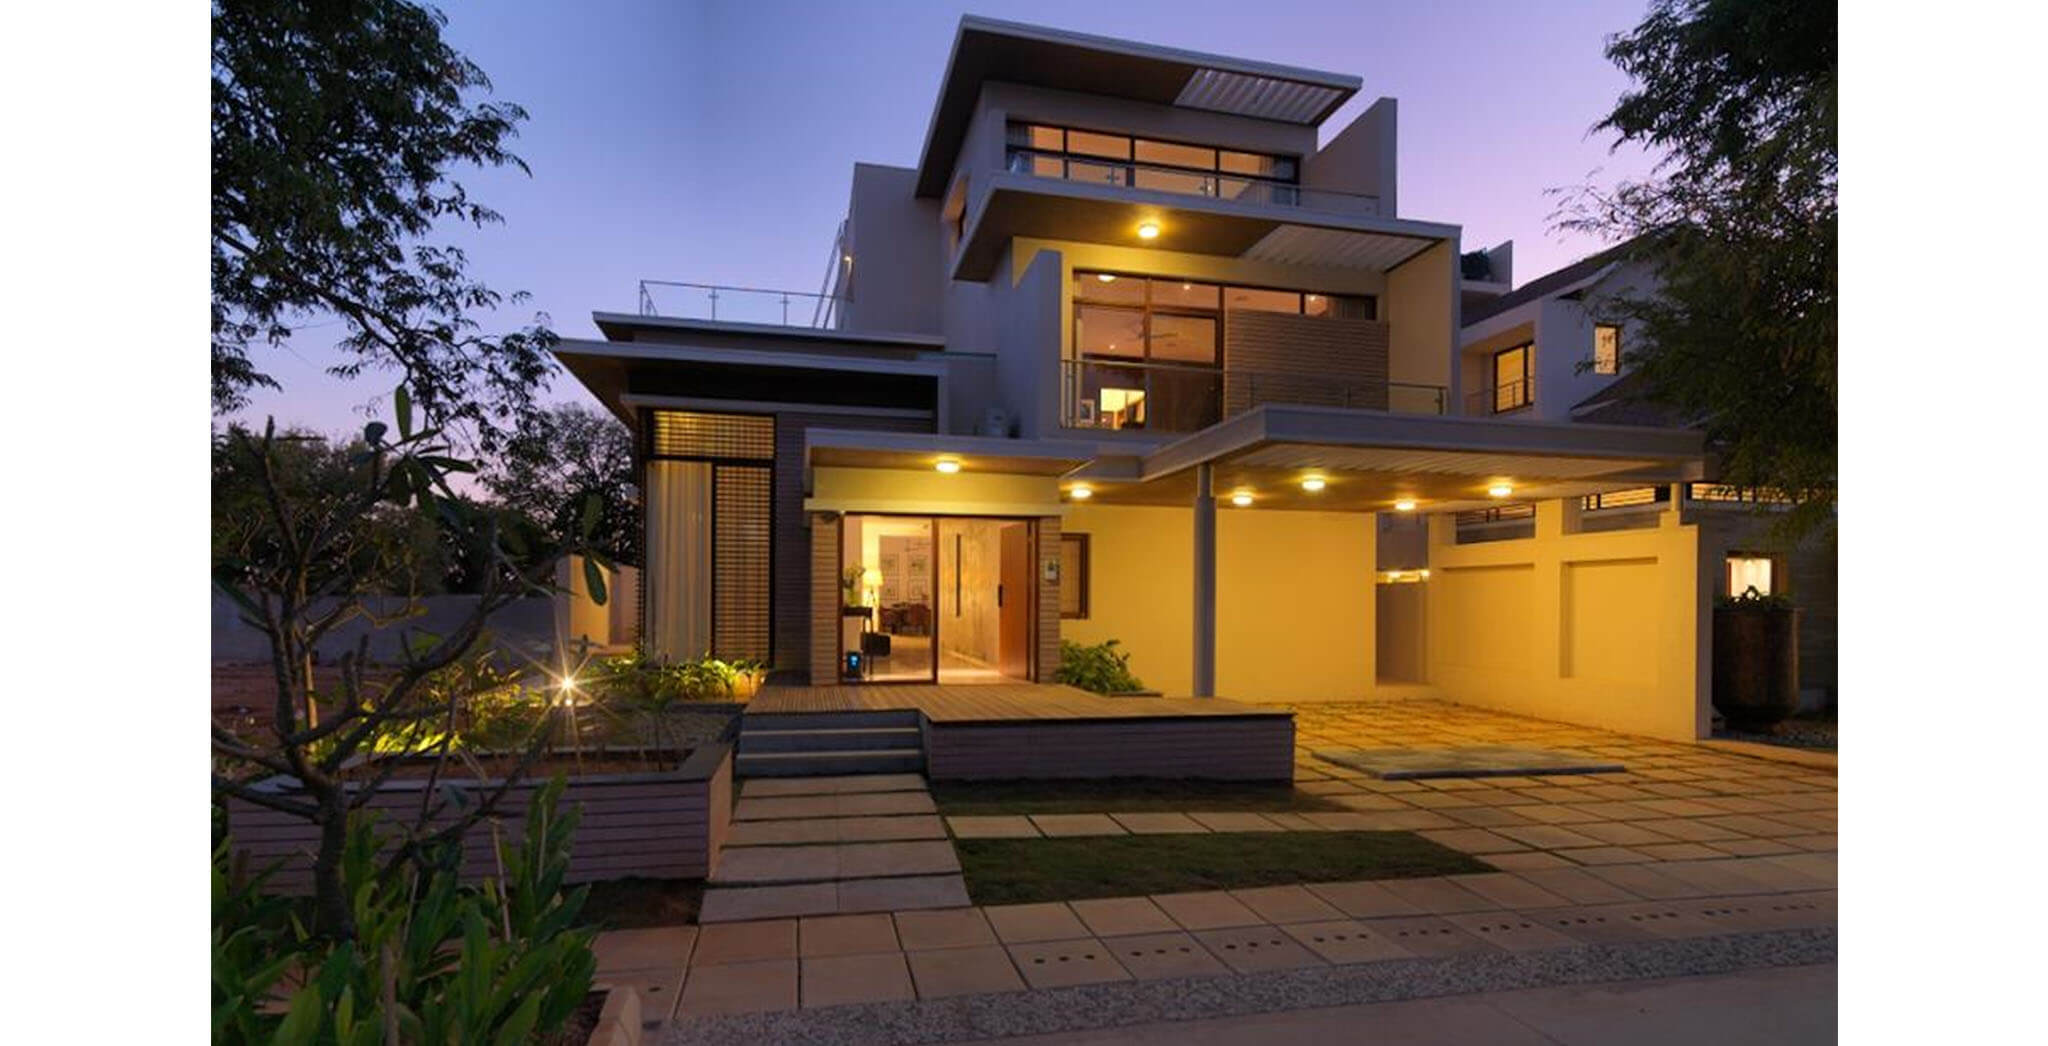 Signature Villas in Bangalore